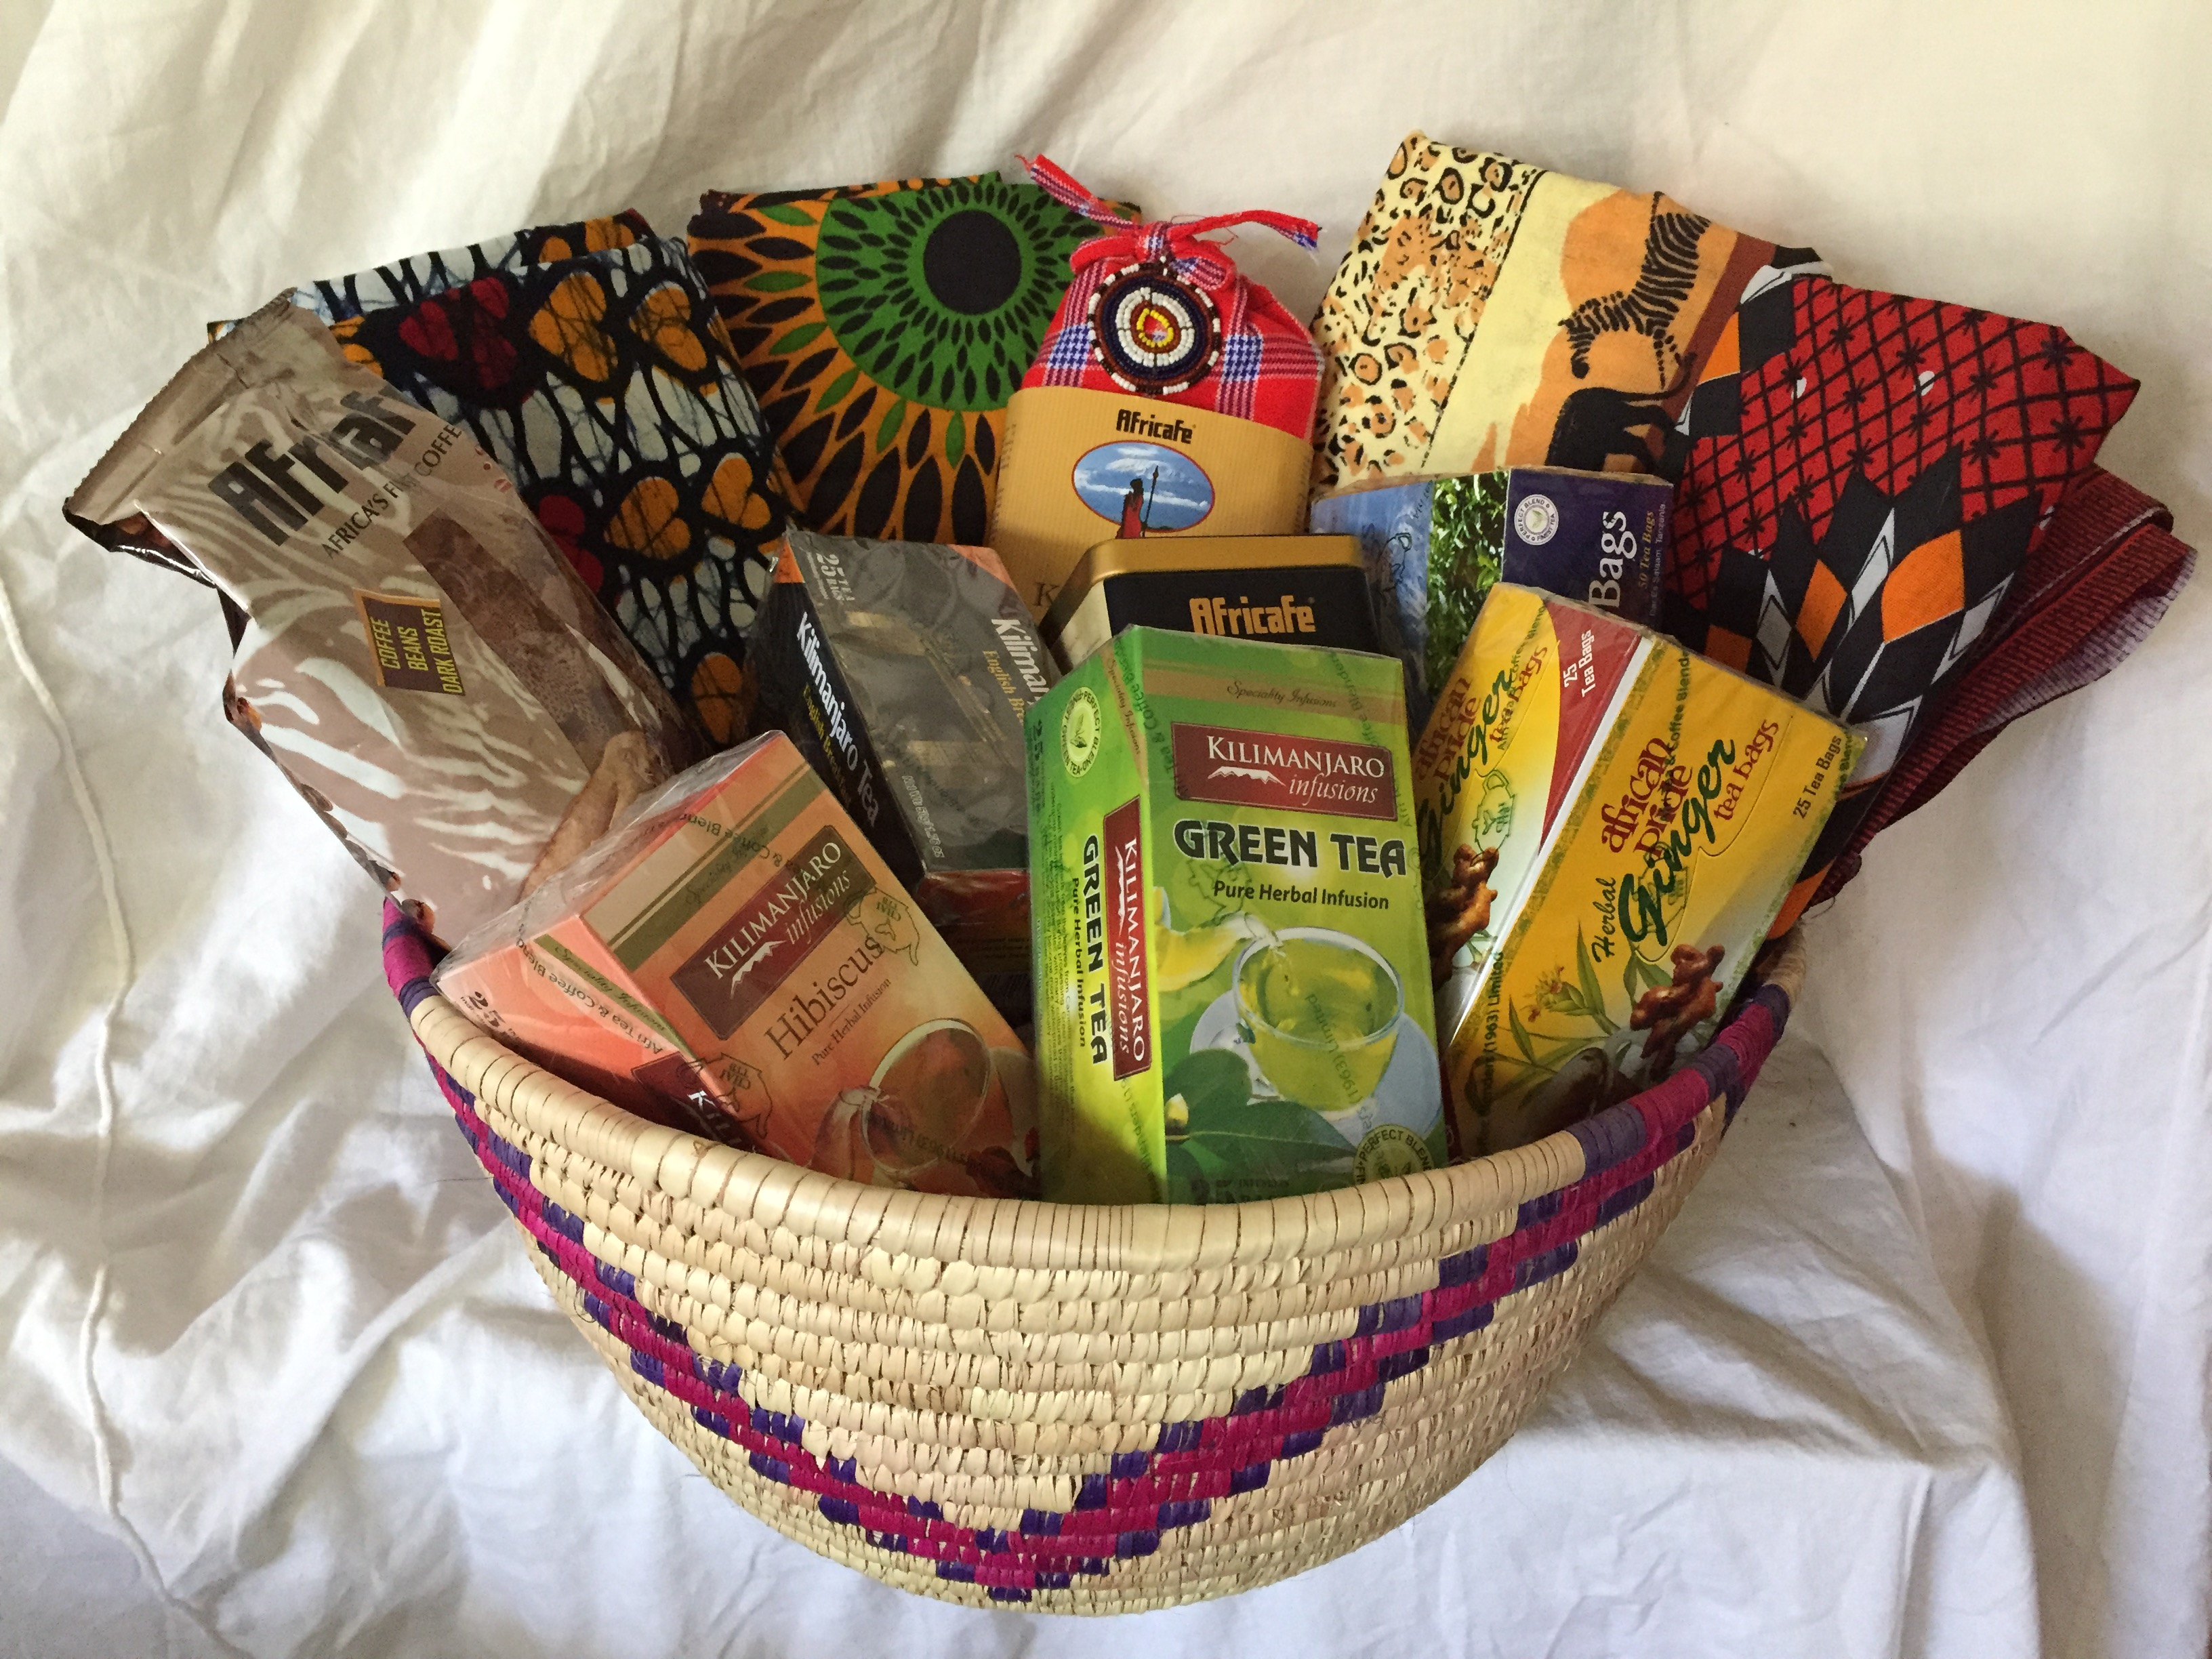 Handmade Baskets From Africa : Quilt expo raffle bringing hope others